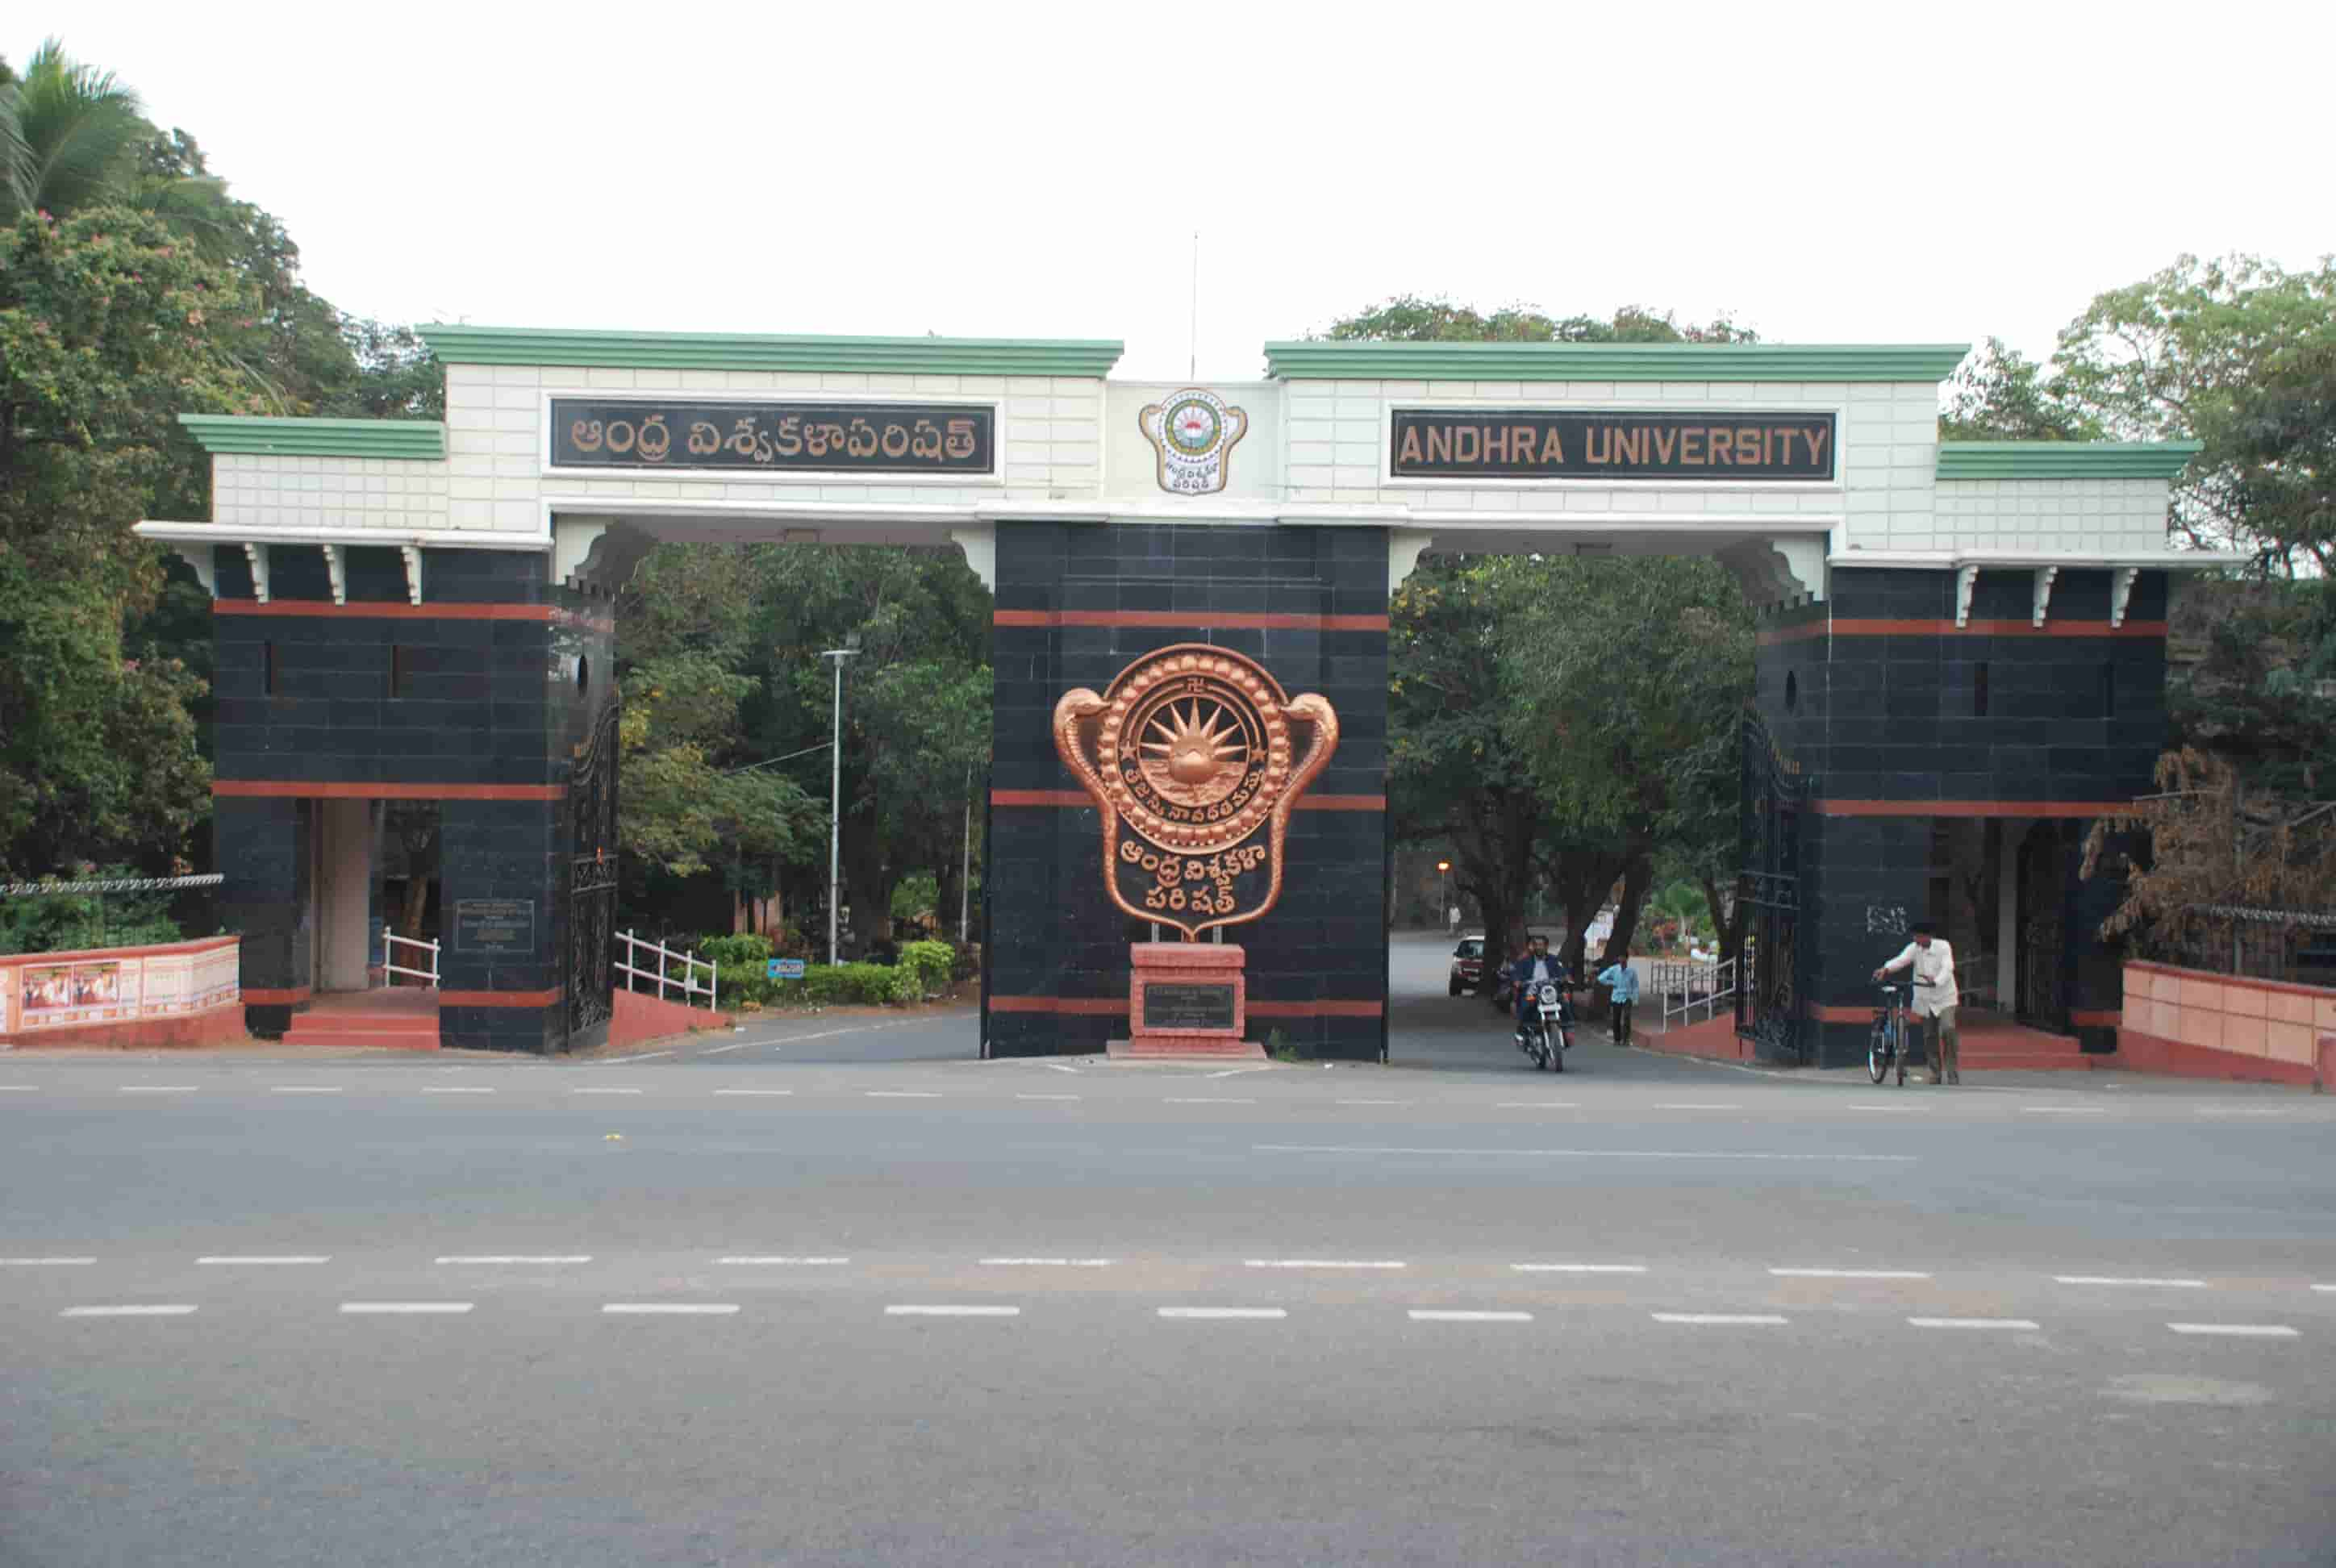 Andhra University, Visakhapatnam - Courses, Fees, Placement